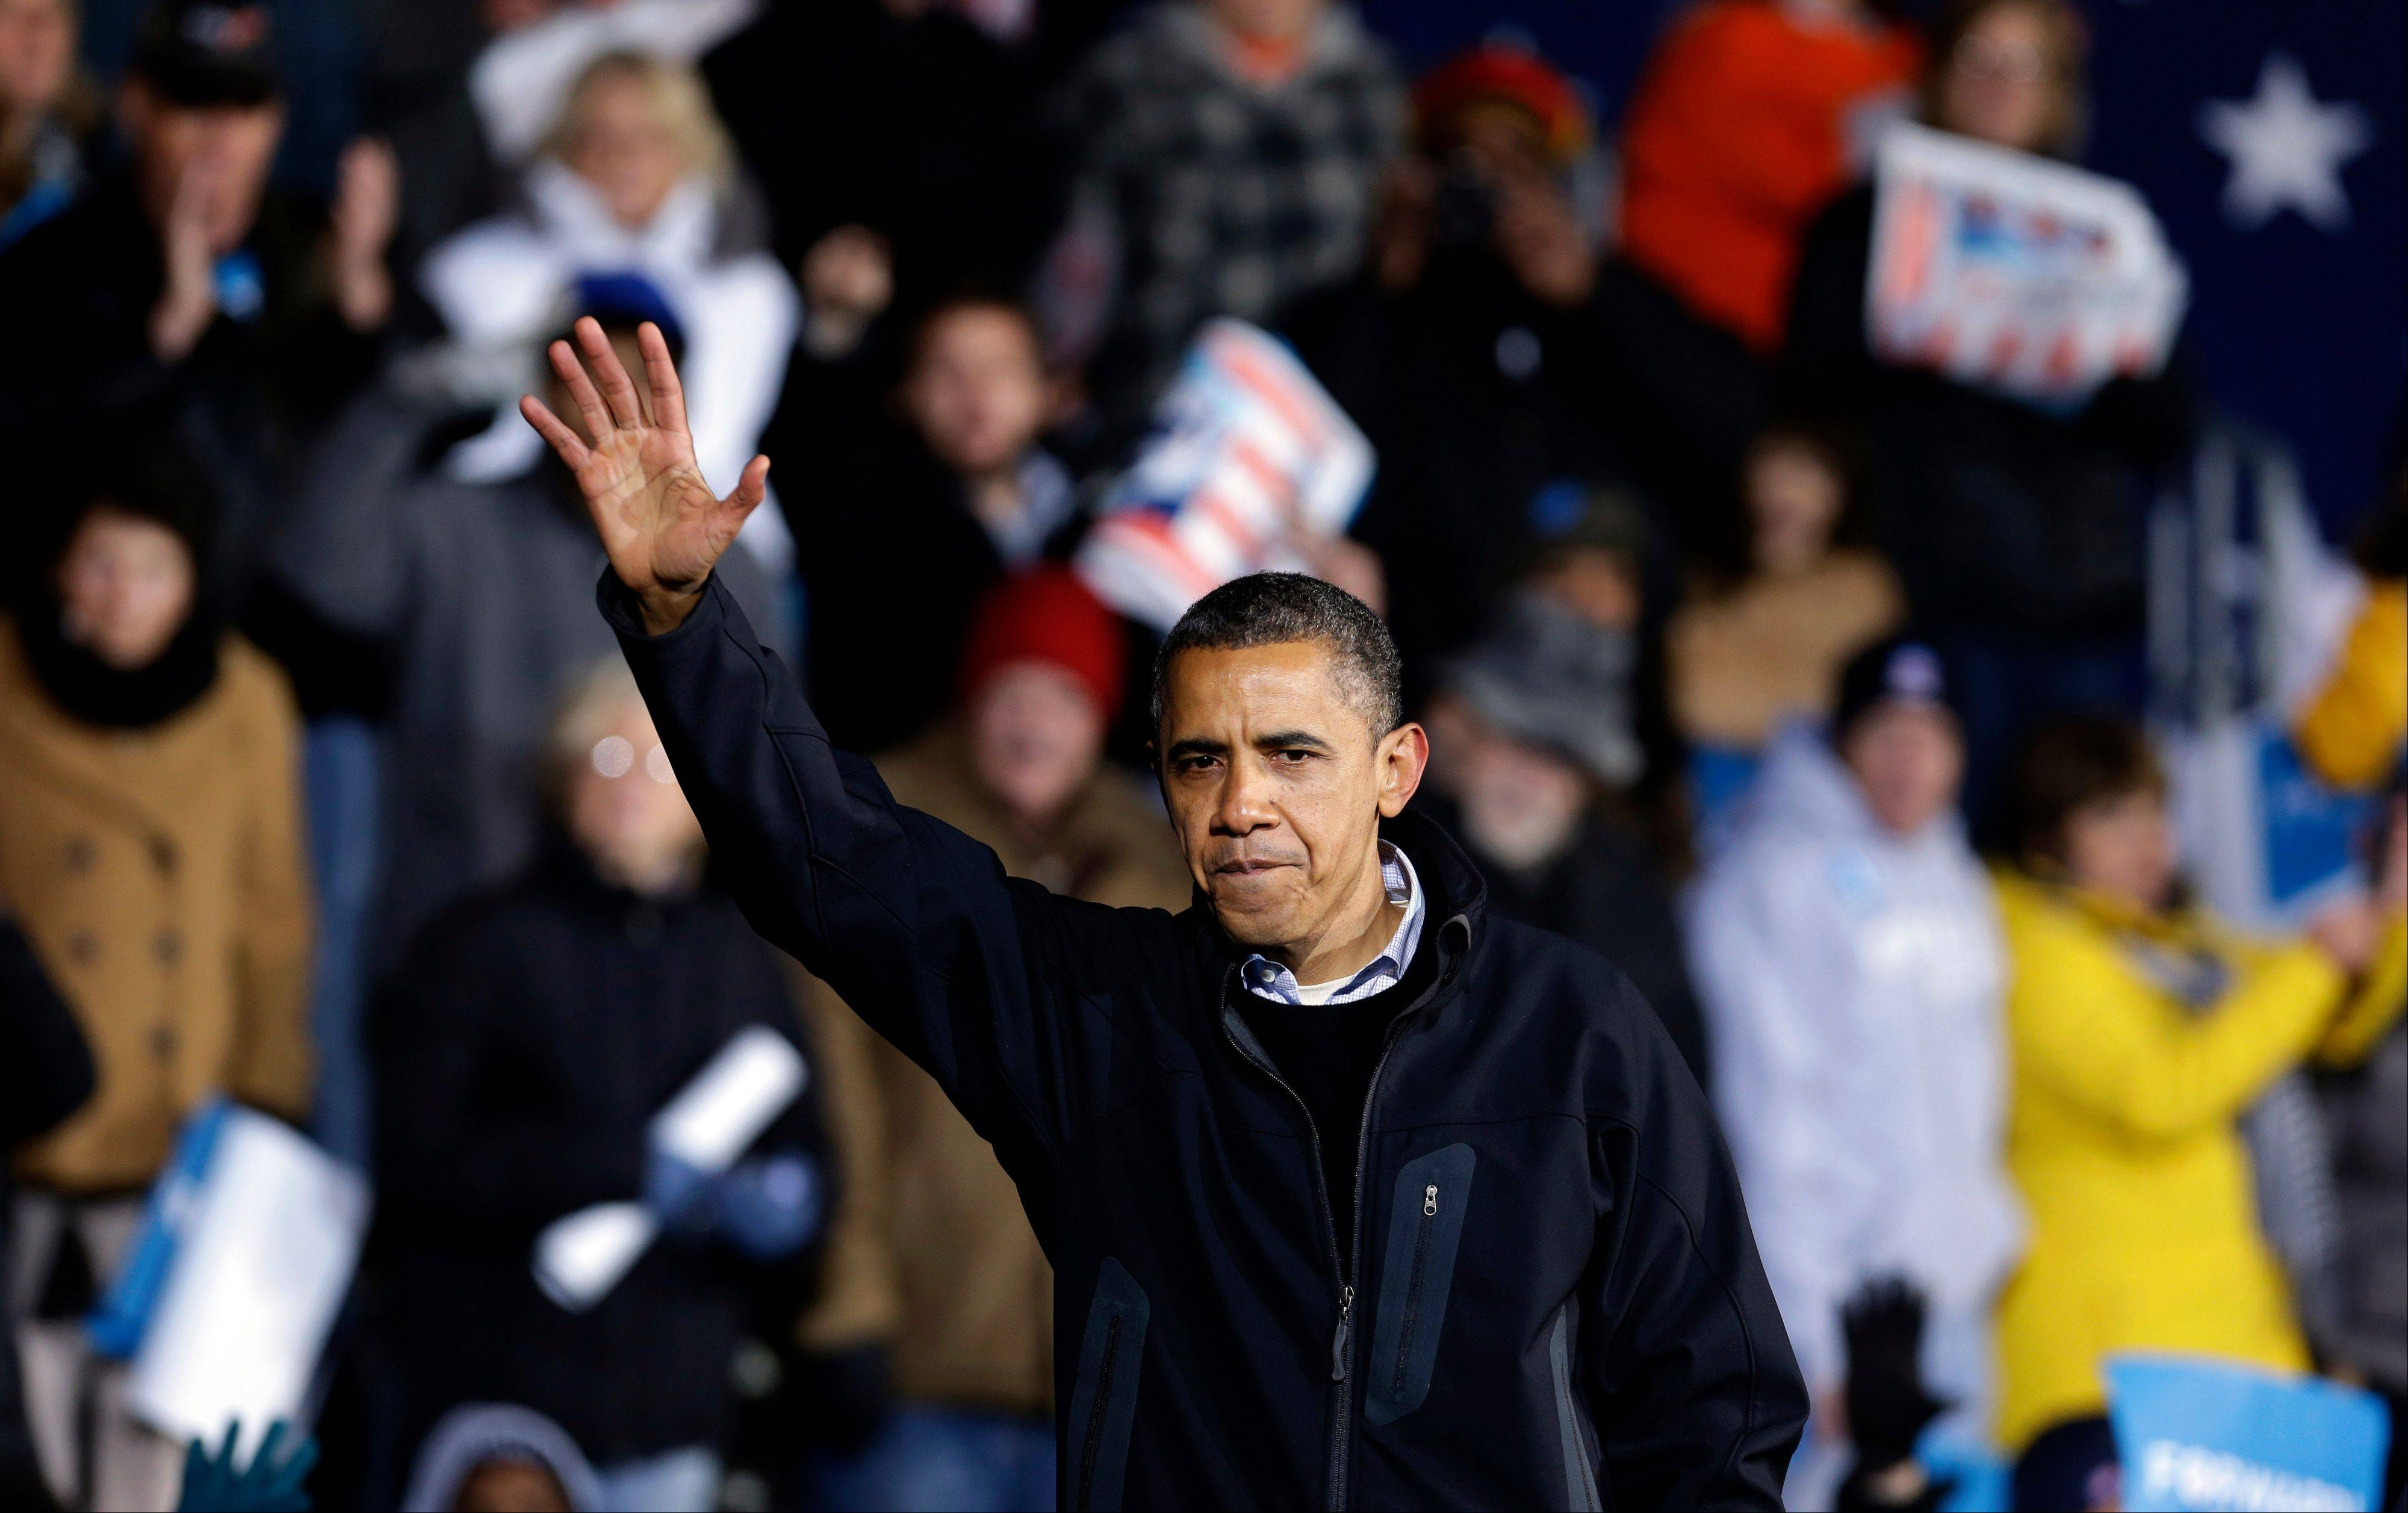 President Barack Obama waves to supporters after speaking at his final campaign stop on the evening before the 2012 election, Monday in Des Moines, Iowa.